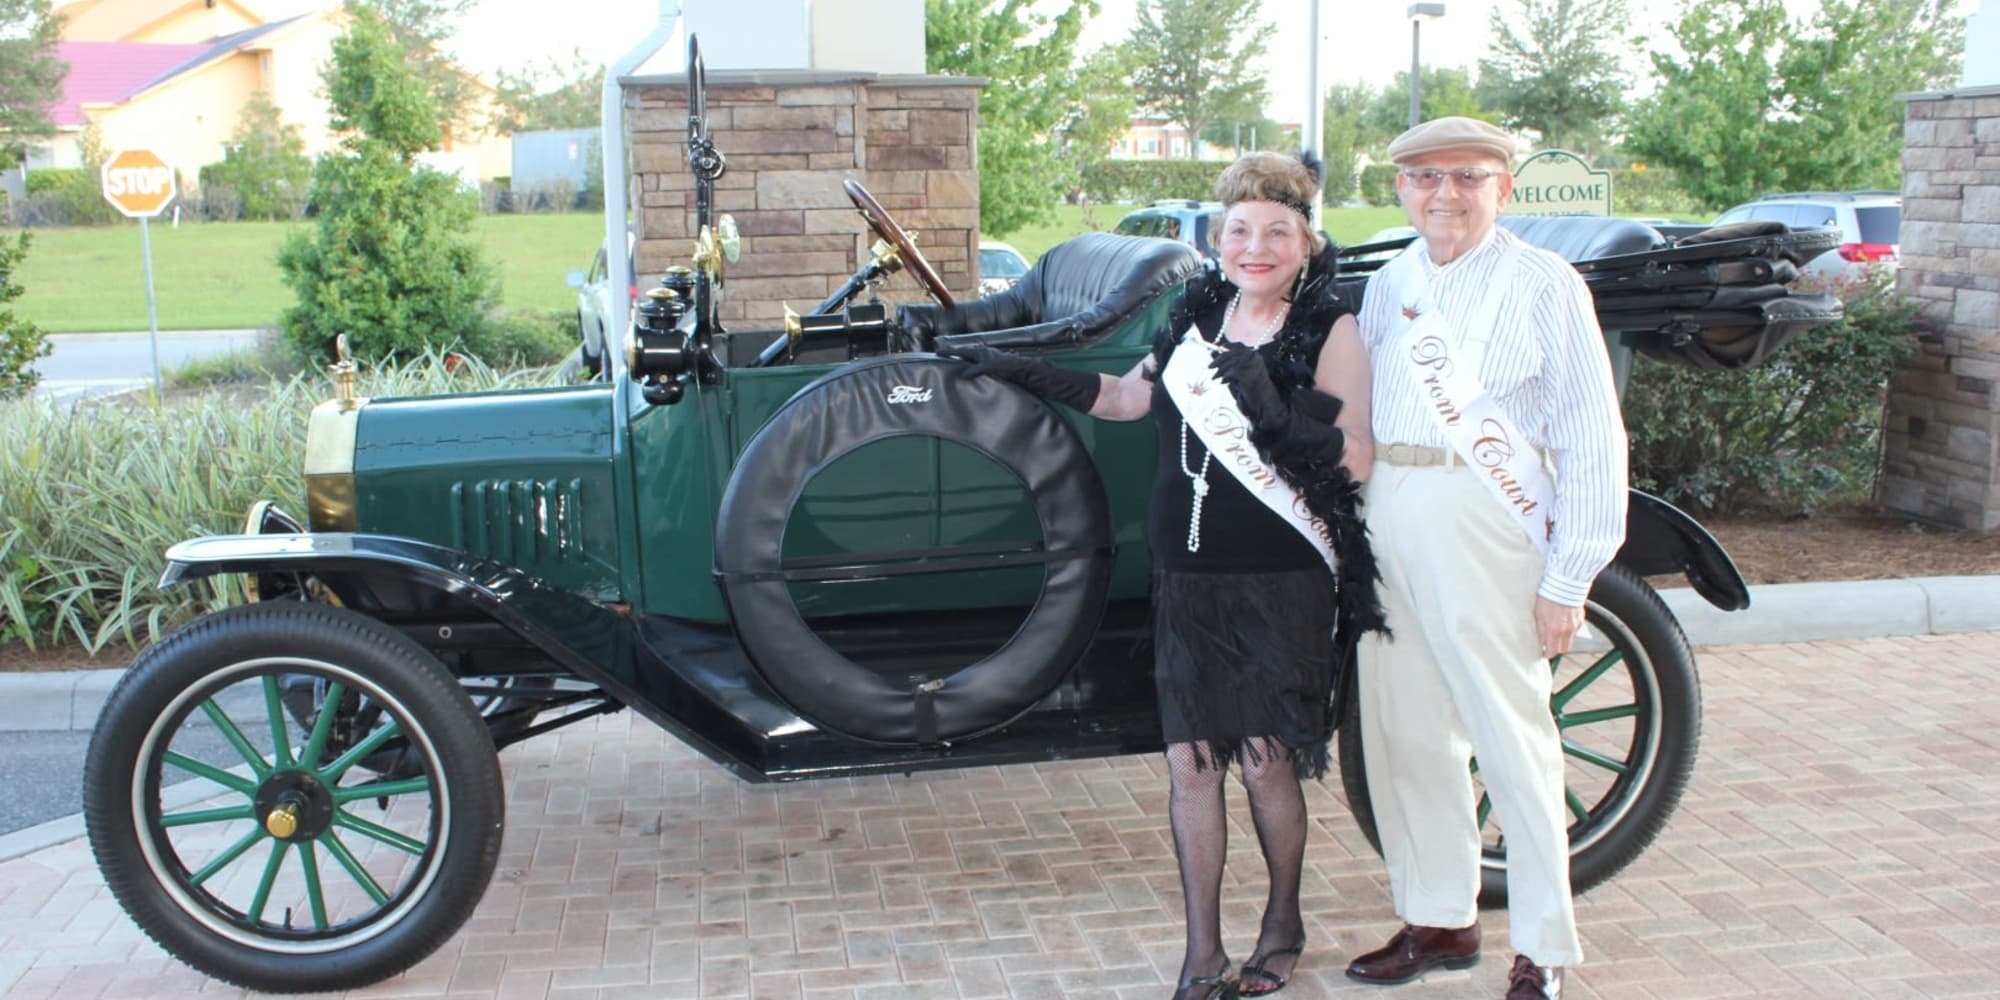 Prim king and queen posing in front of a classic car at Winterberry Heights Assisted Living in Bangor, Maine